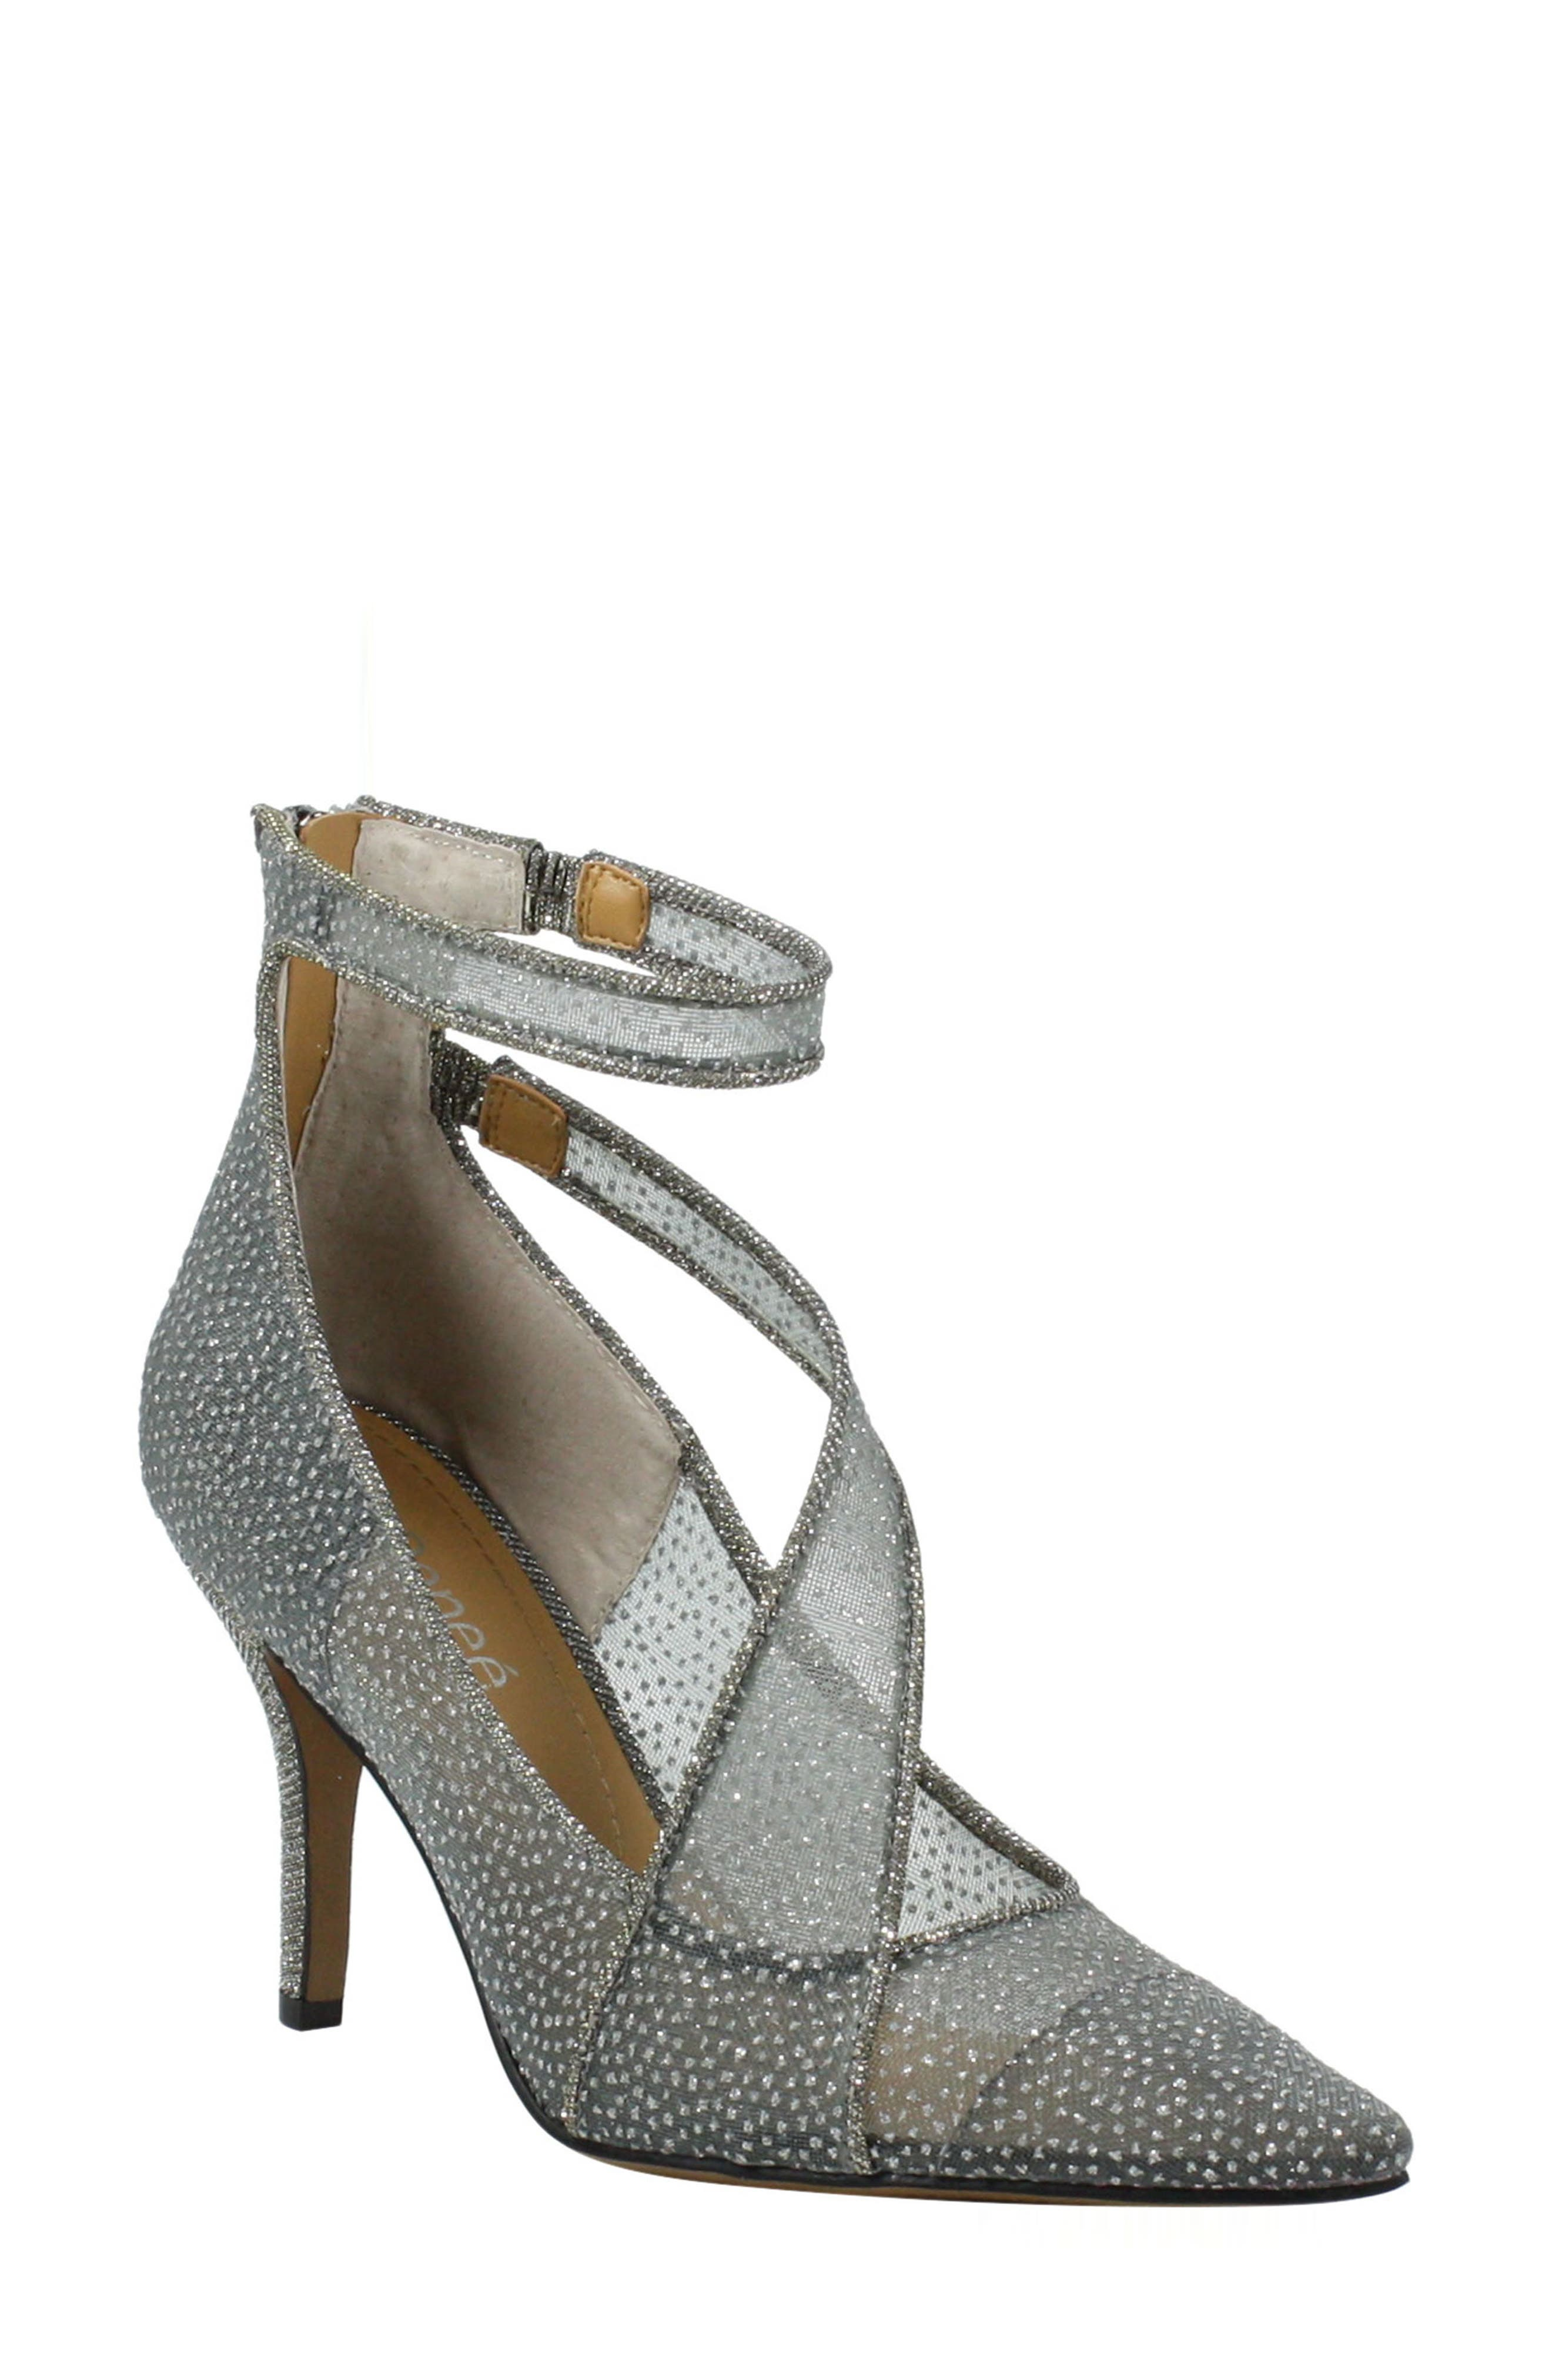 Charmion Ankle Strap Pointed Toe Pump